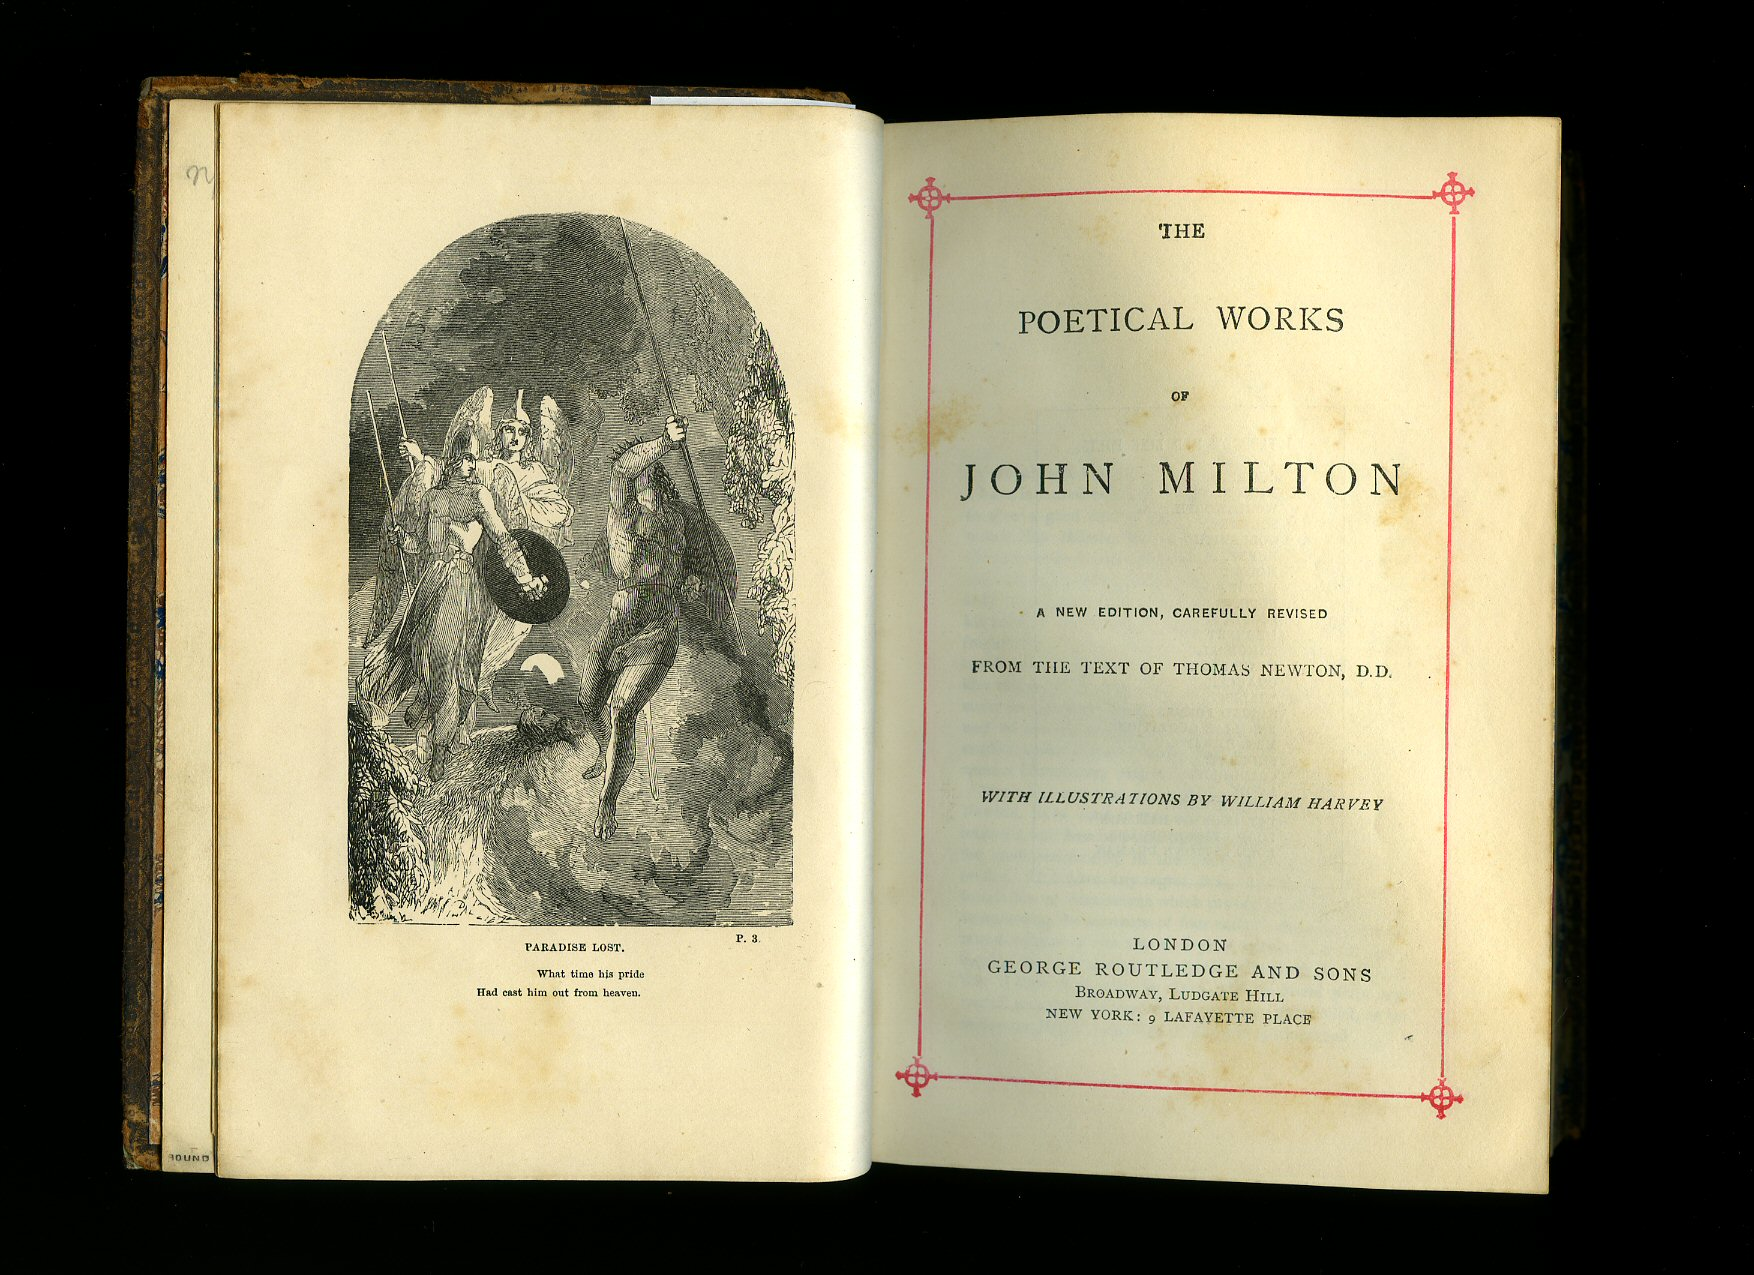 john milton milton john 1608 1674 preface by theodore alois buckley the poetical